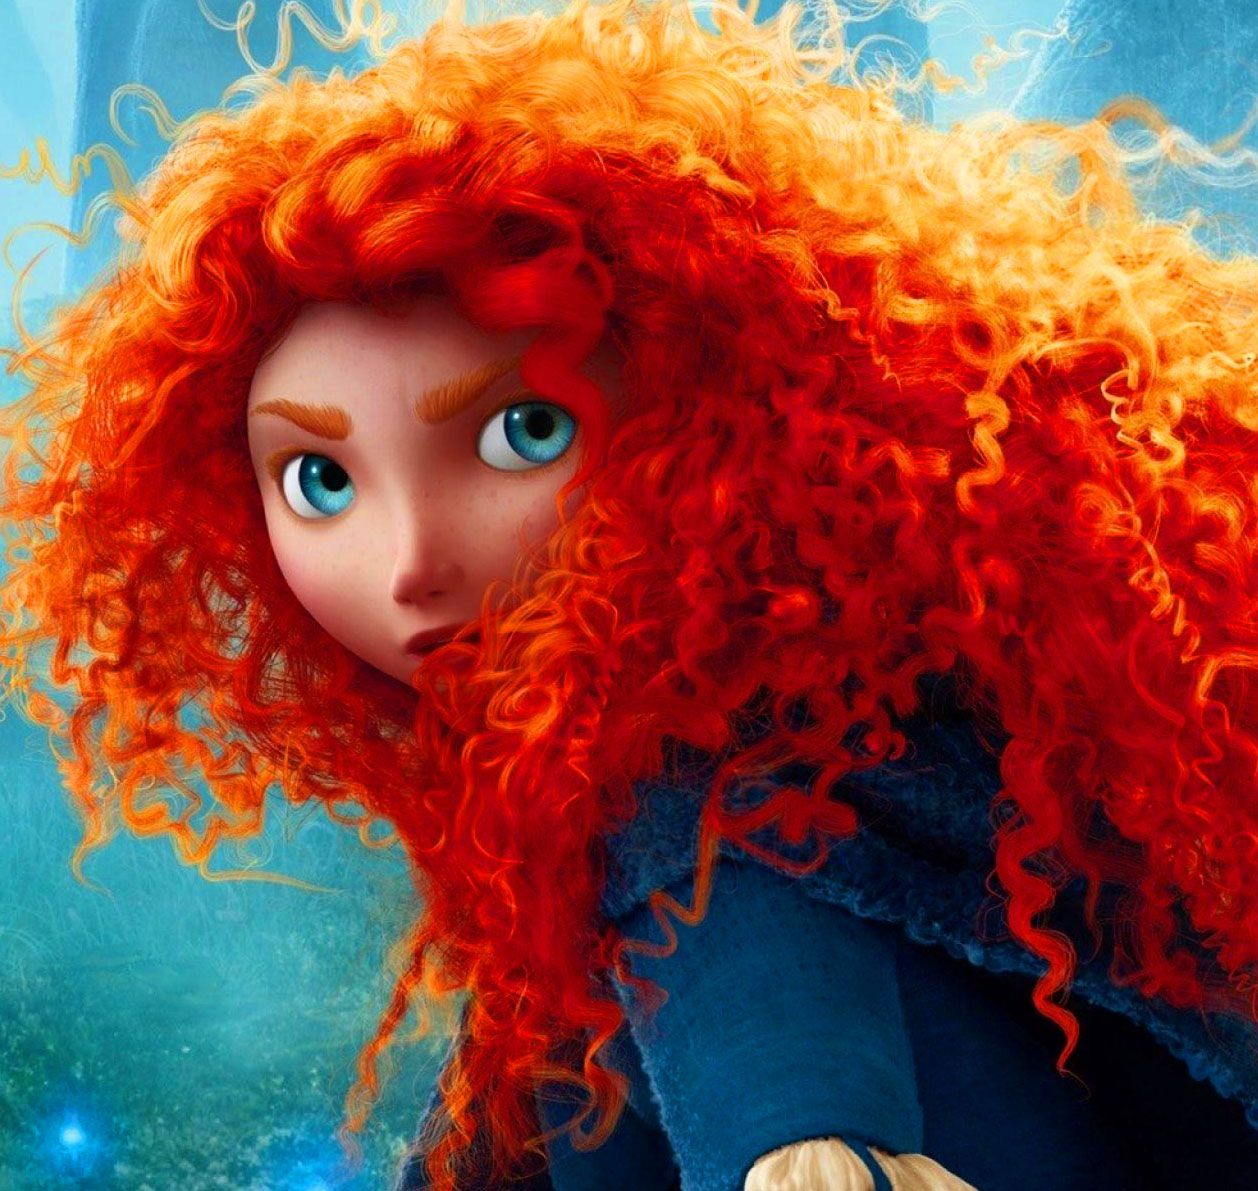 F is for flamebuoyant how pixar made meridas brave hair